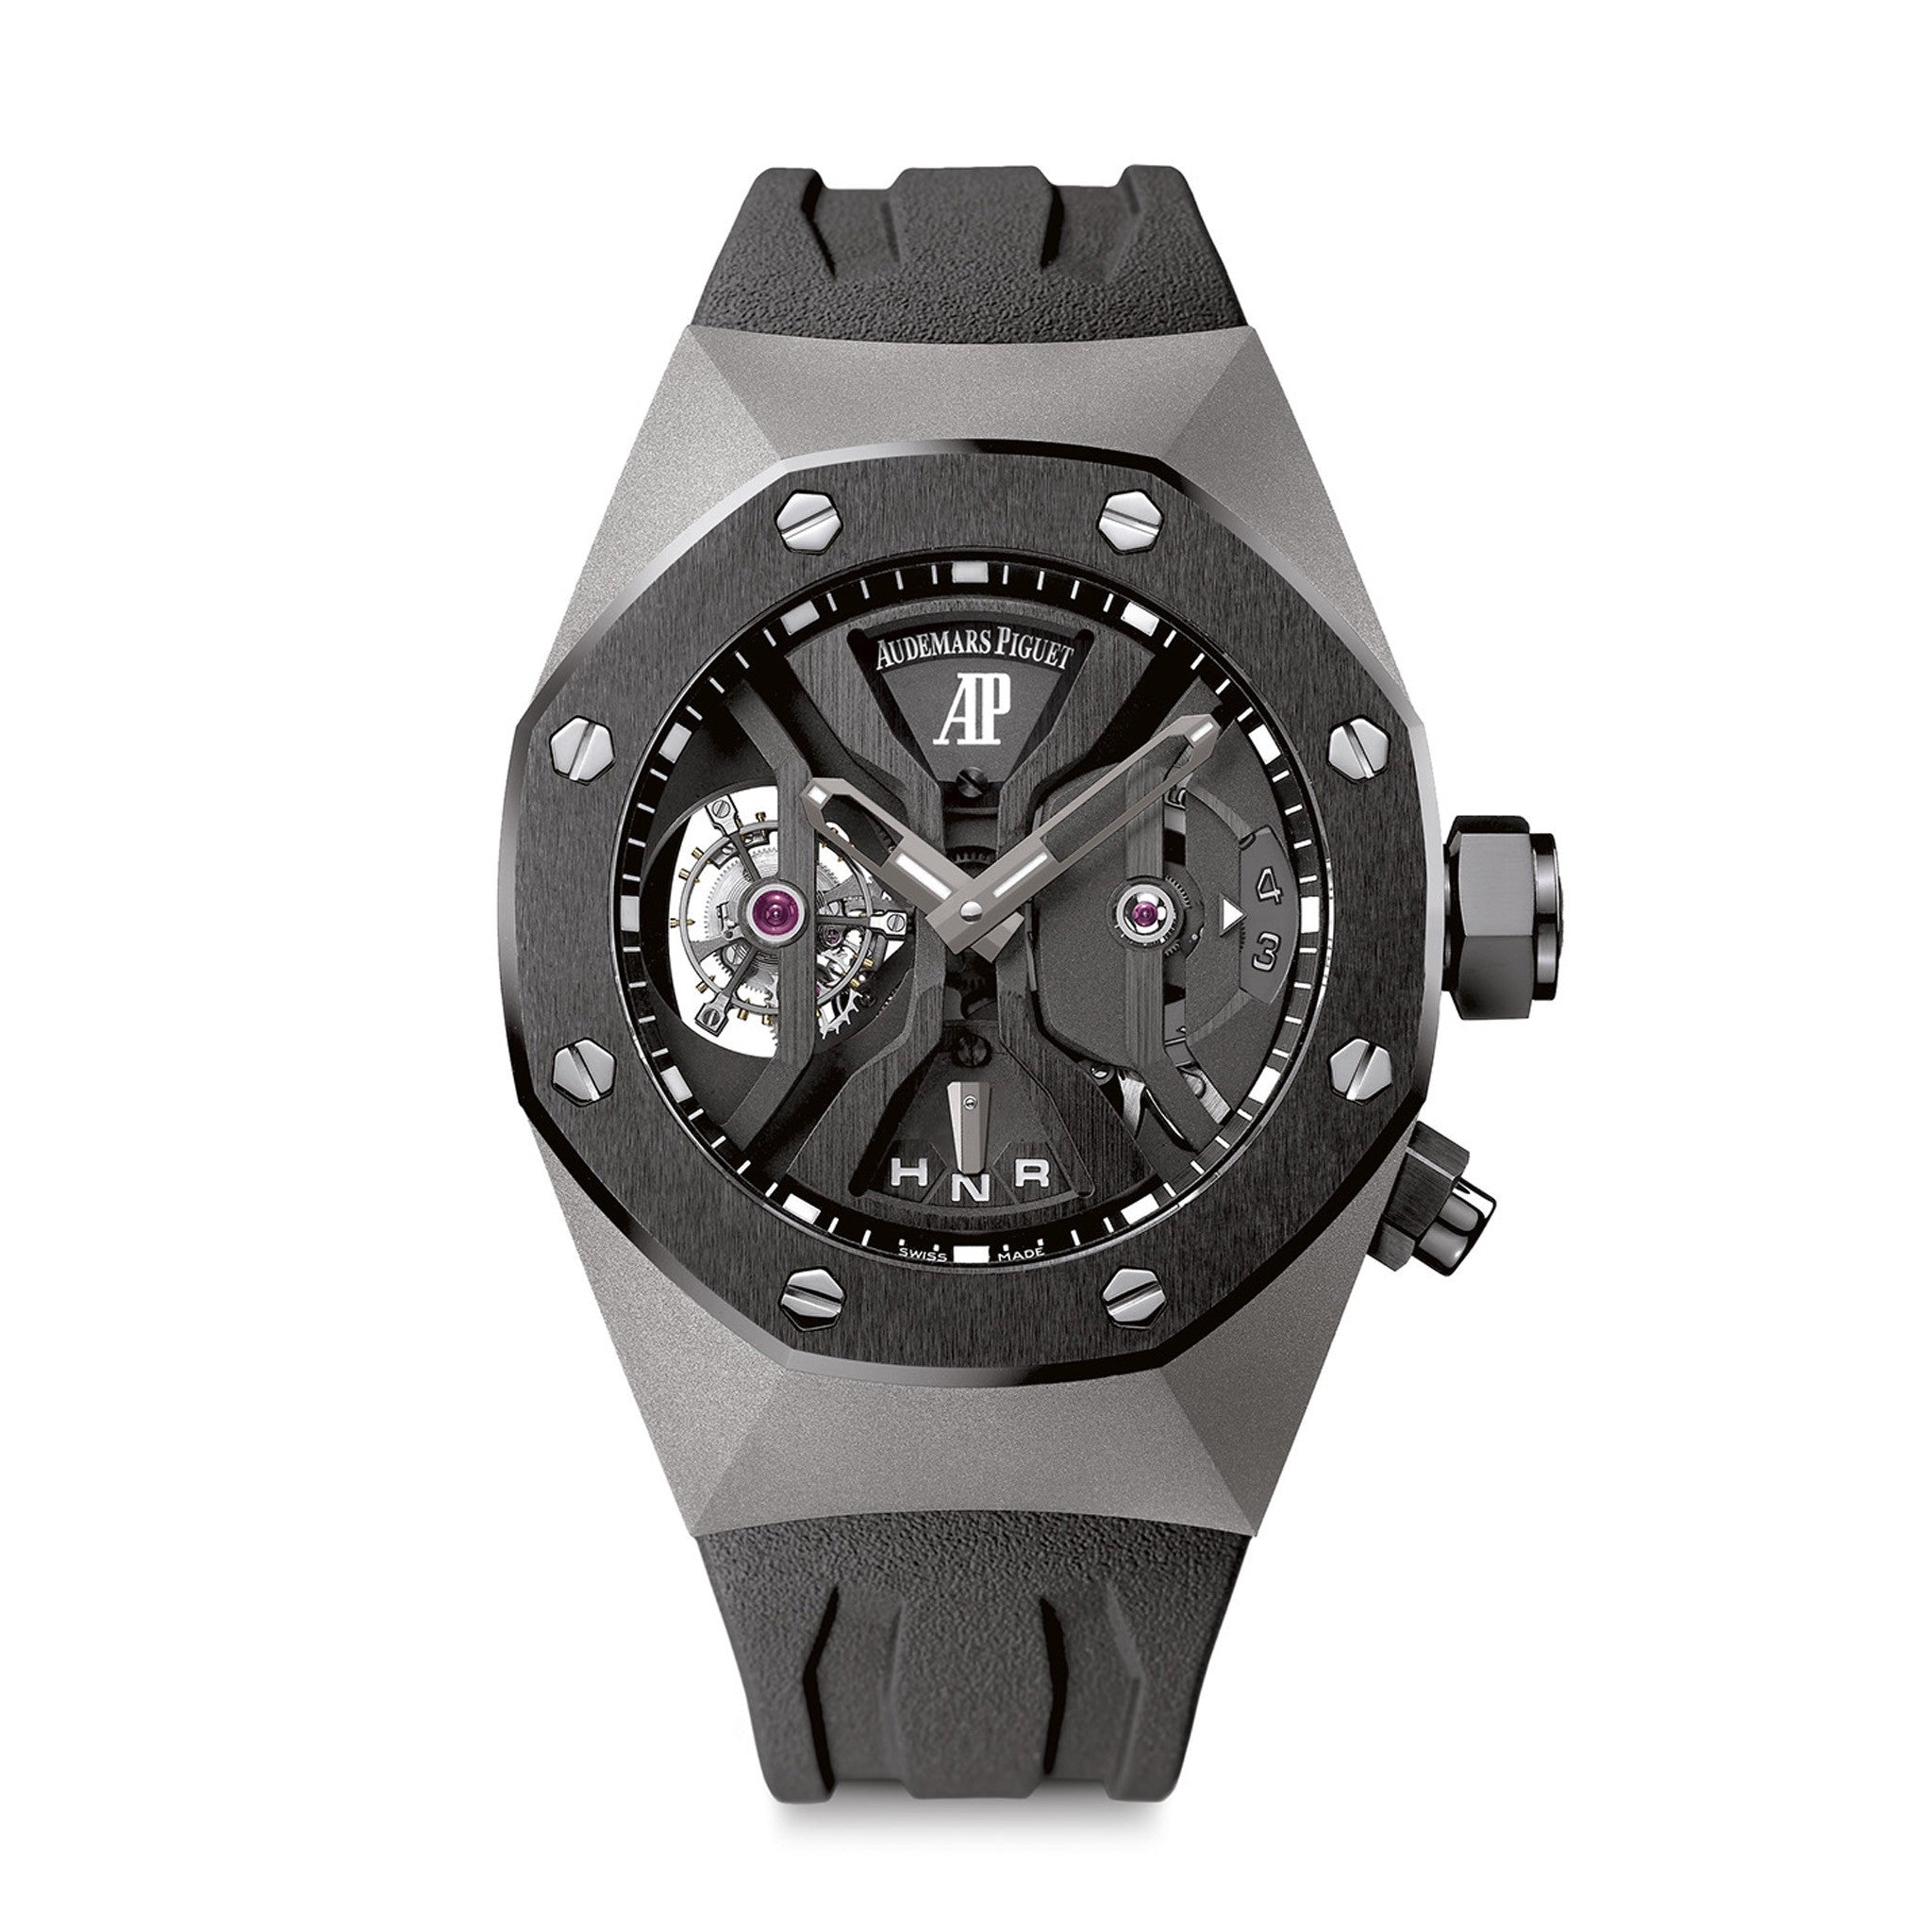 Royal Oak Concept GMT Tourbillon 26560IO.OO.D002CA.01 - Audemars Piguet